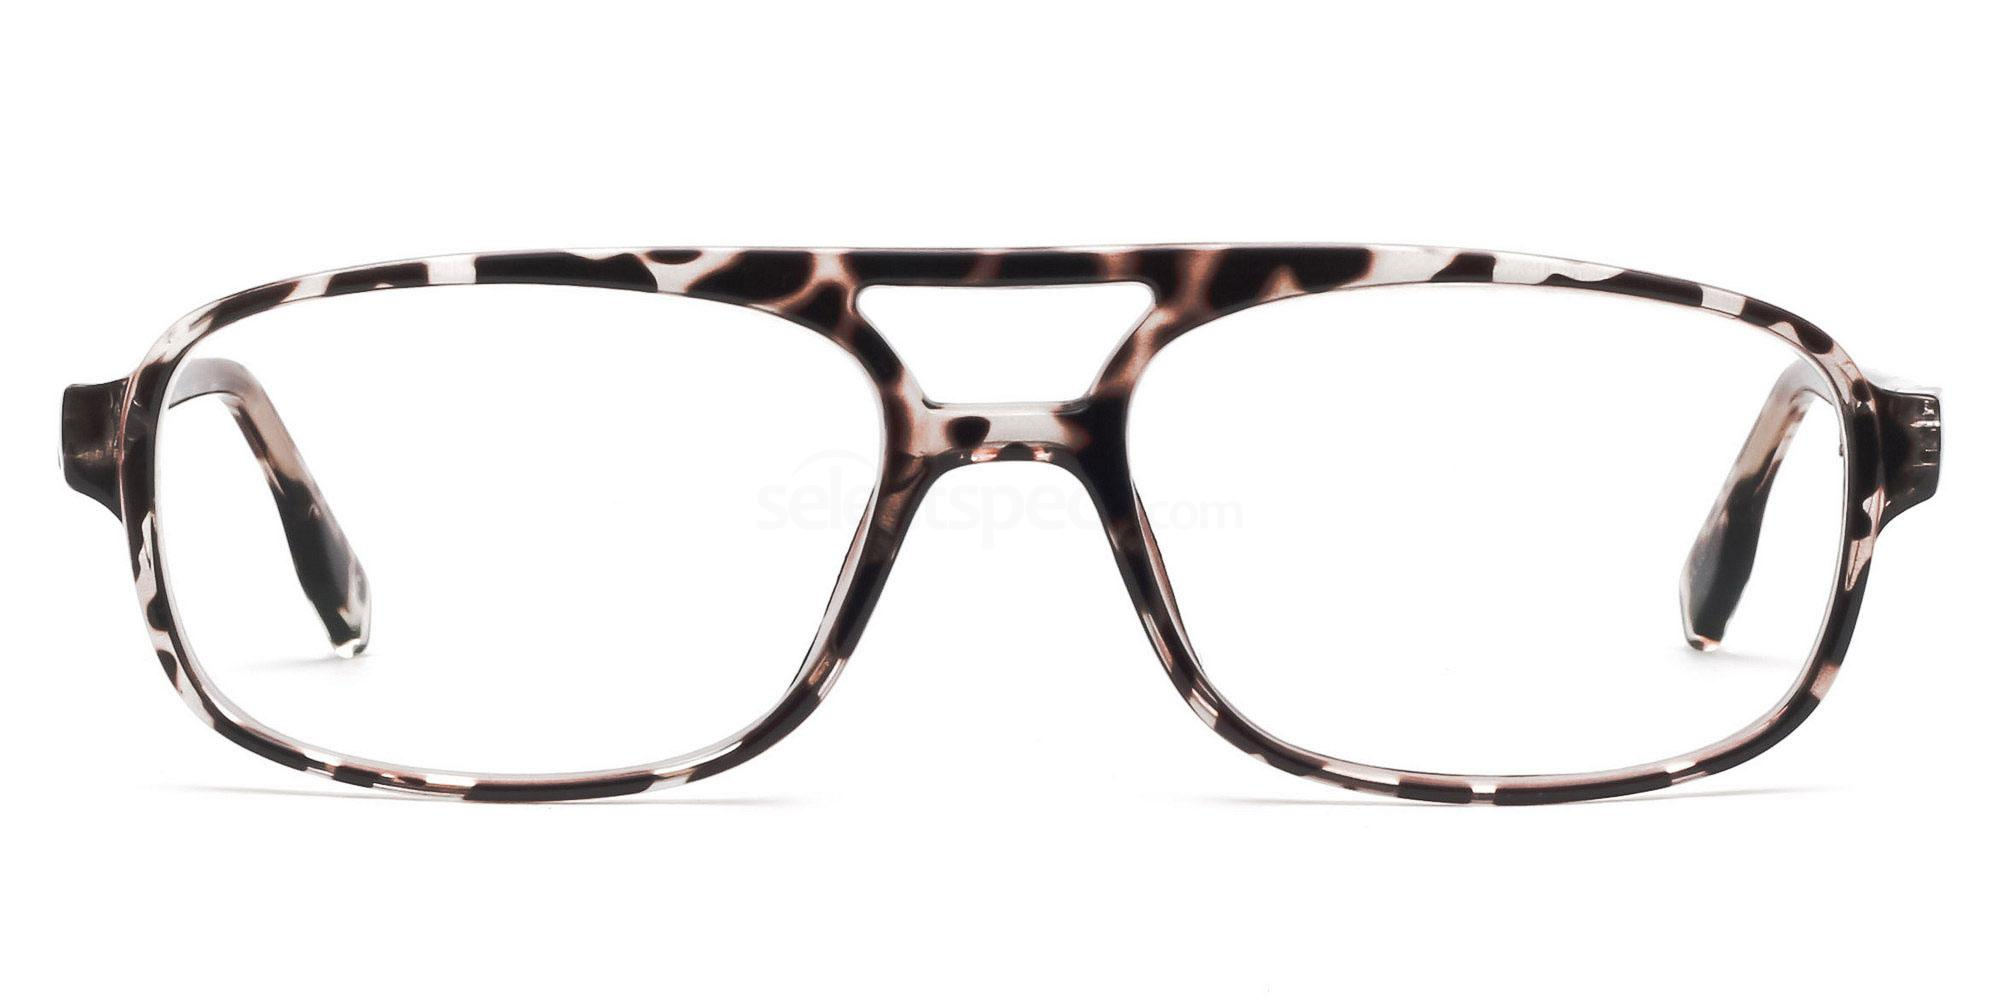 C3 P2395 - Animal Print Glasses, SelectSpecs